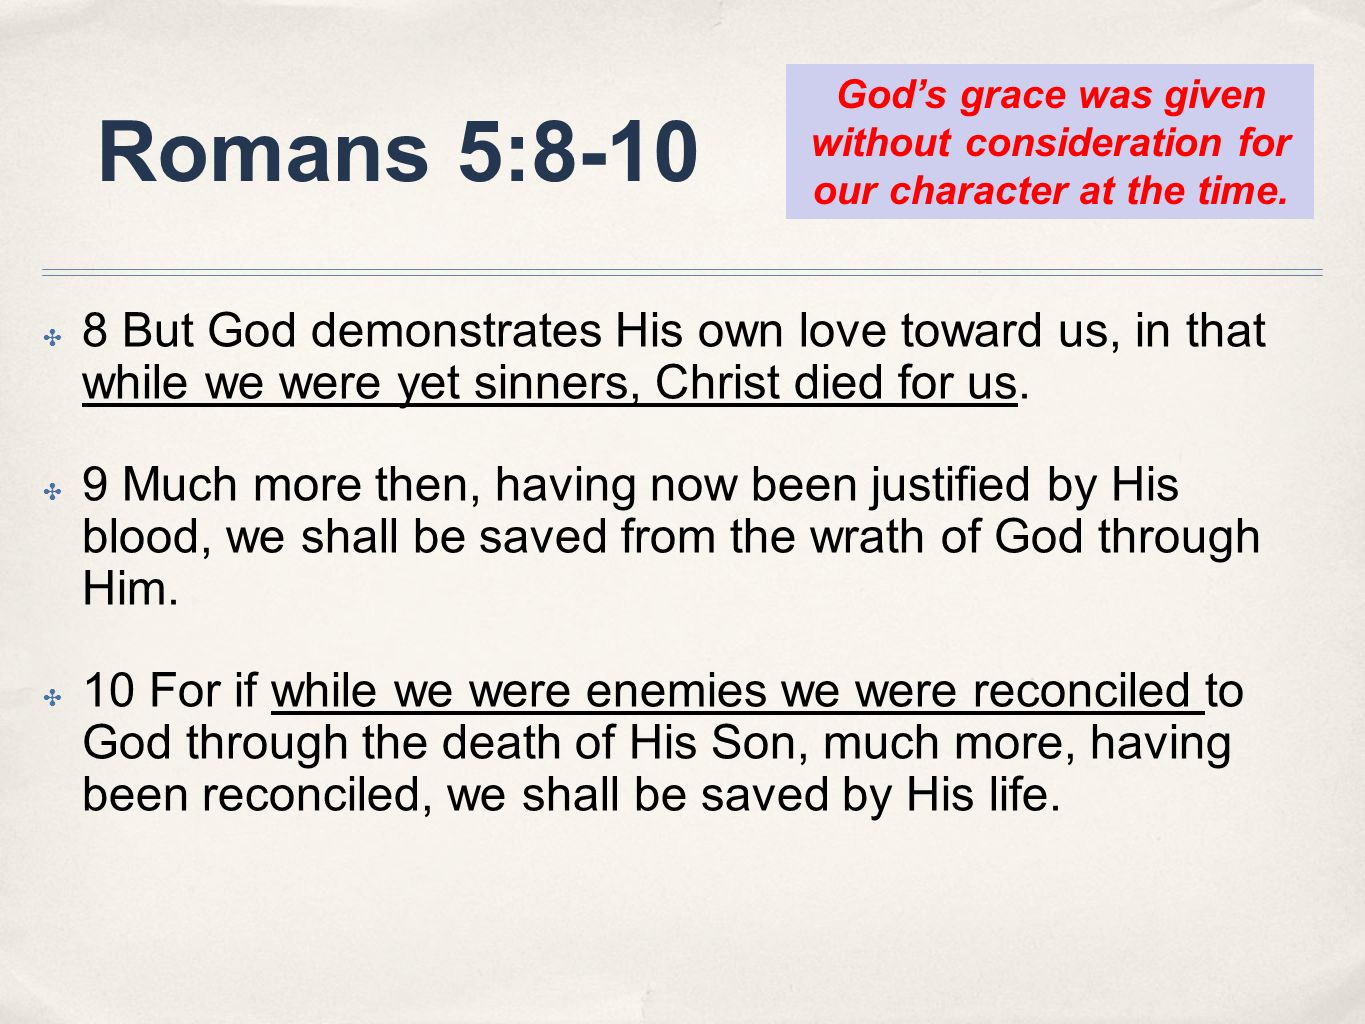 Romans 5:8-10 God's grace was given without consideration for our character at the time.